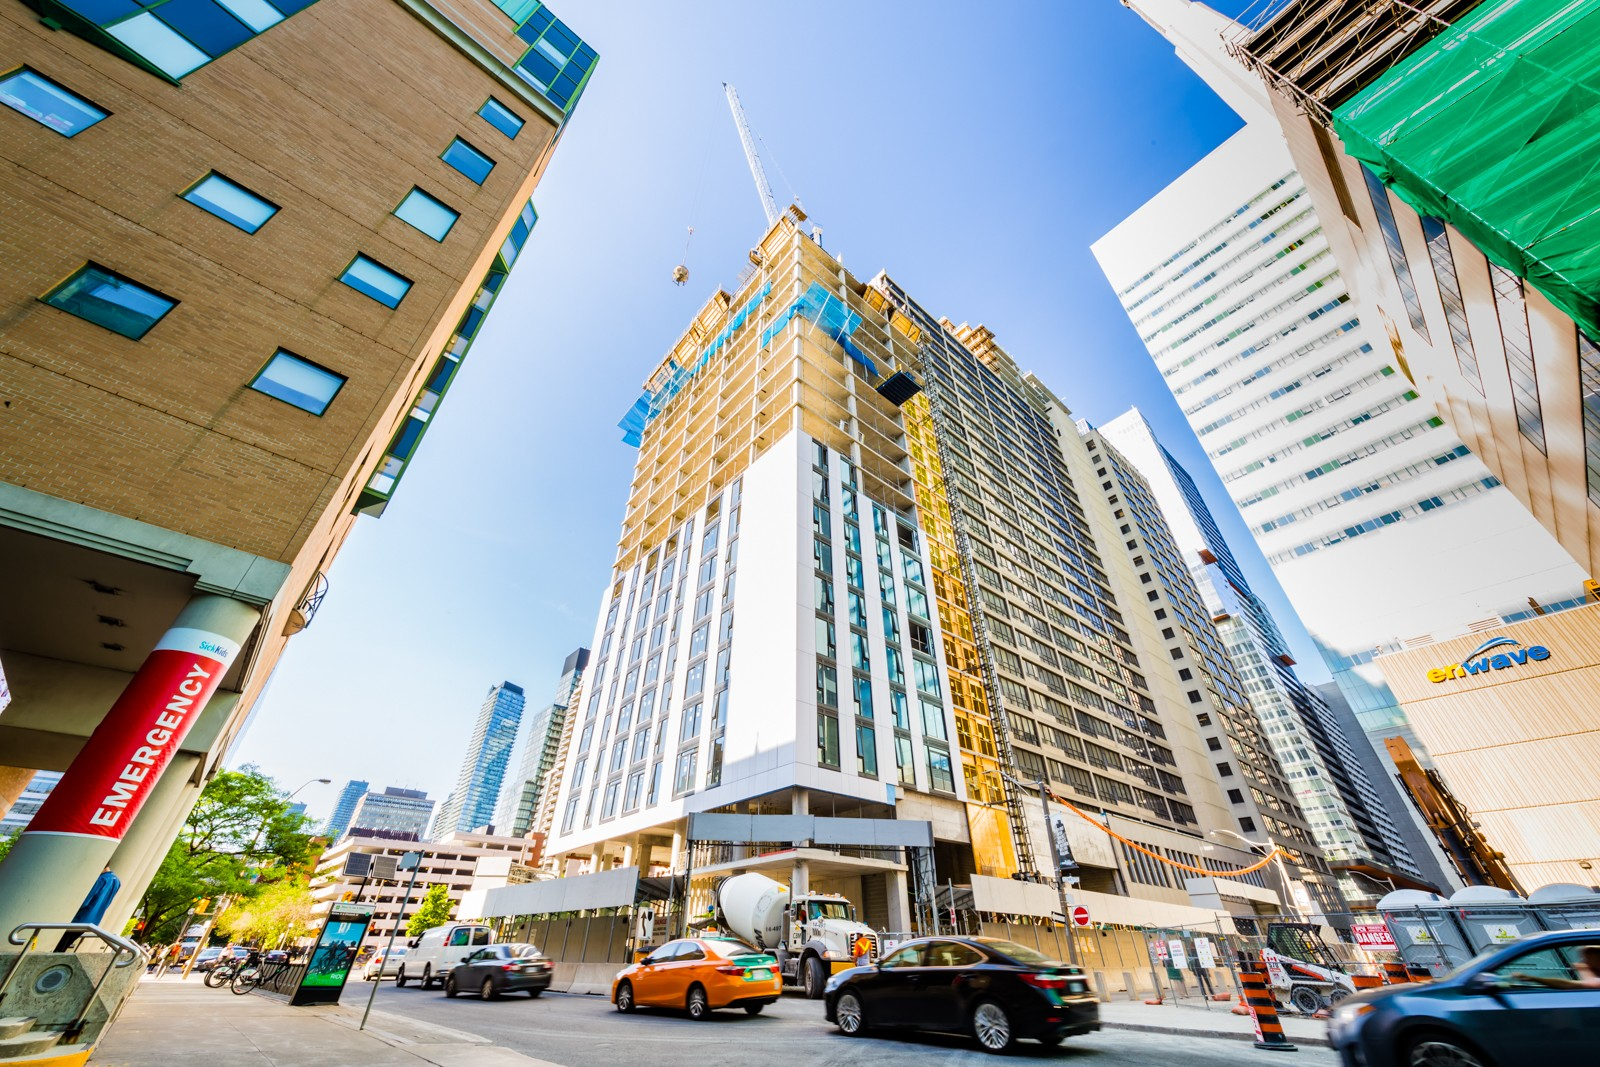 The Livmore at 43 Gerrard St W, Toronto 1